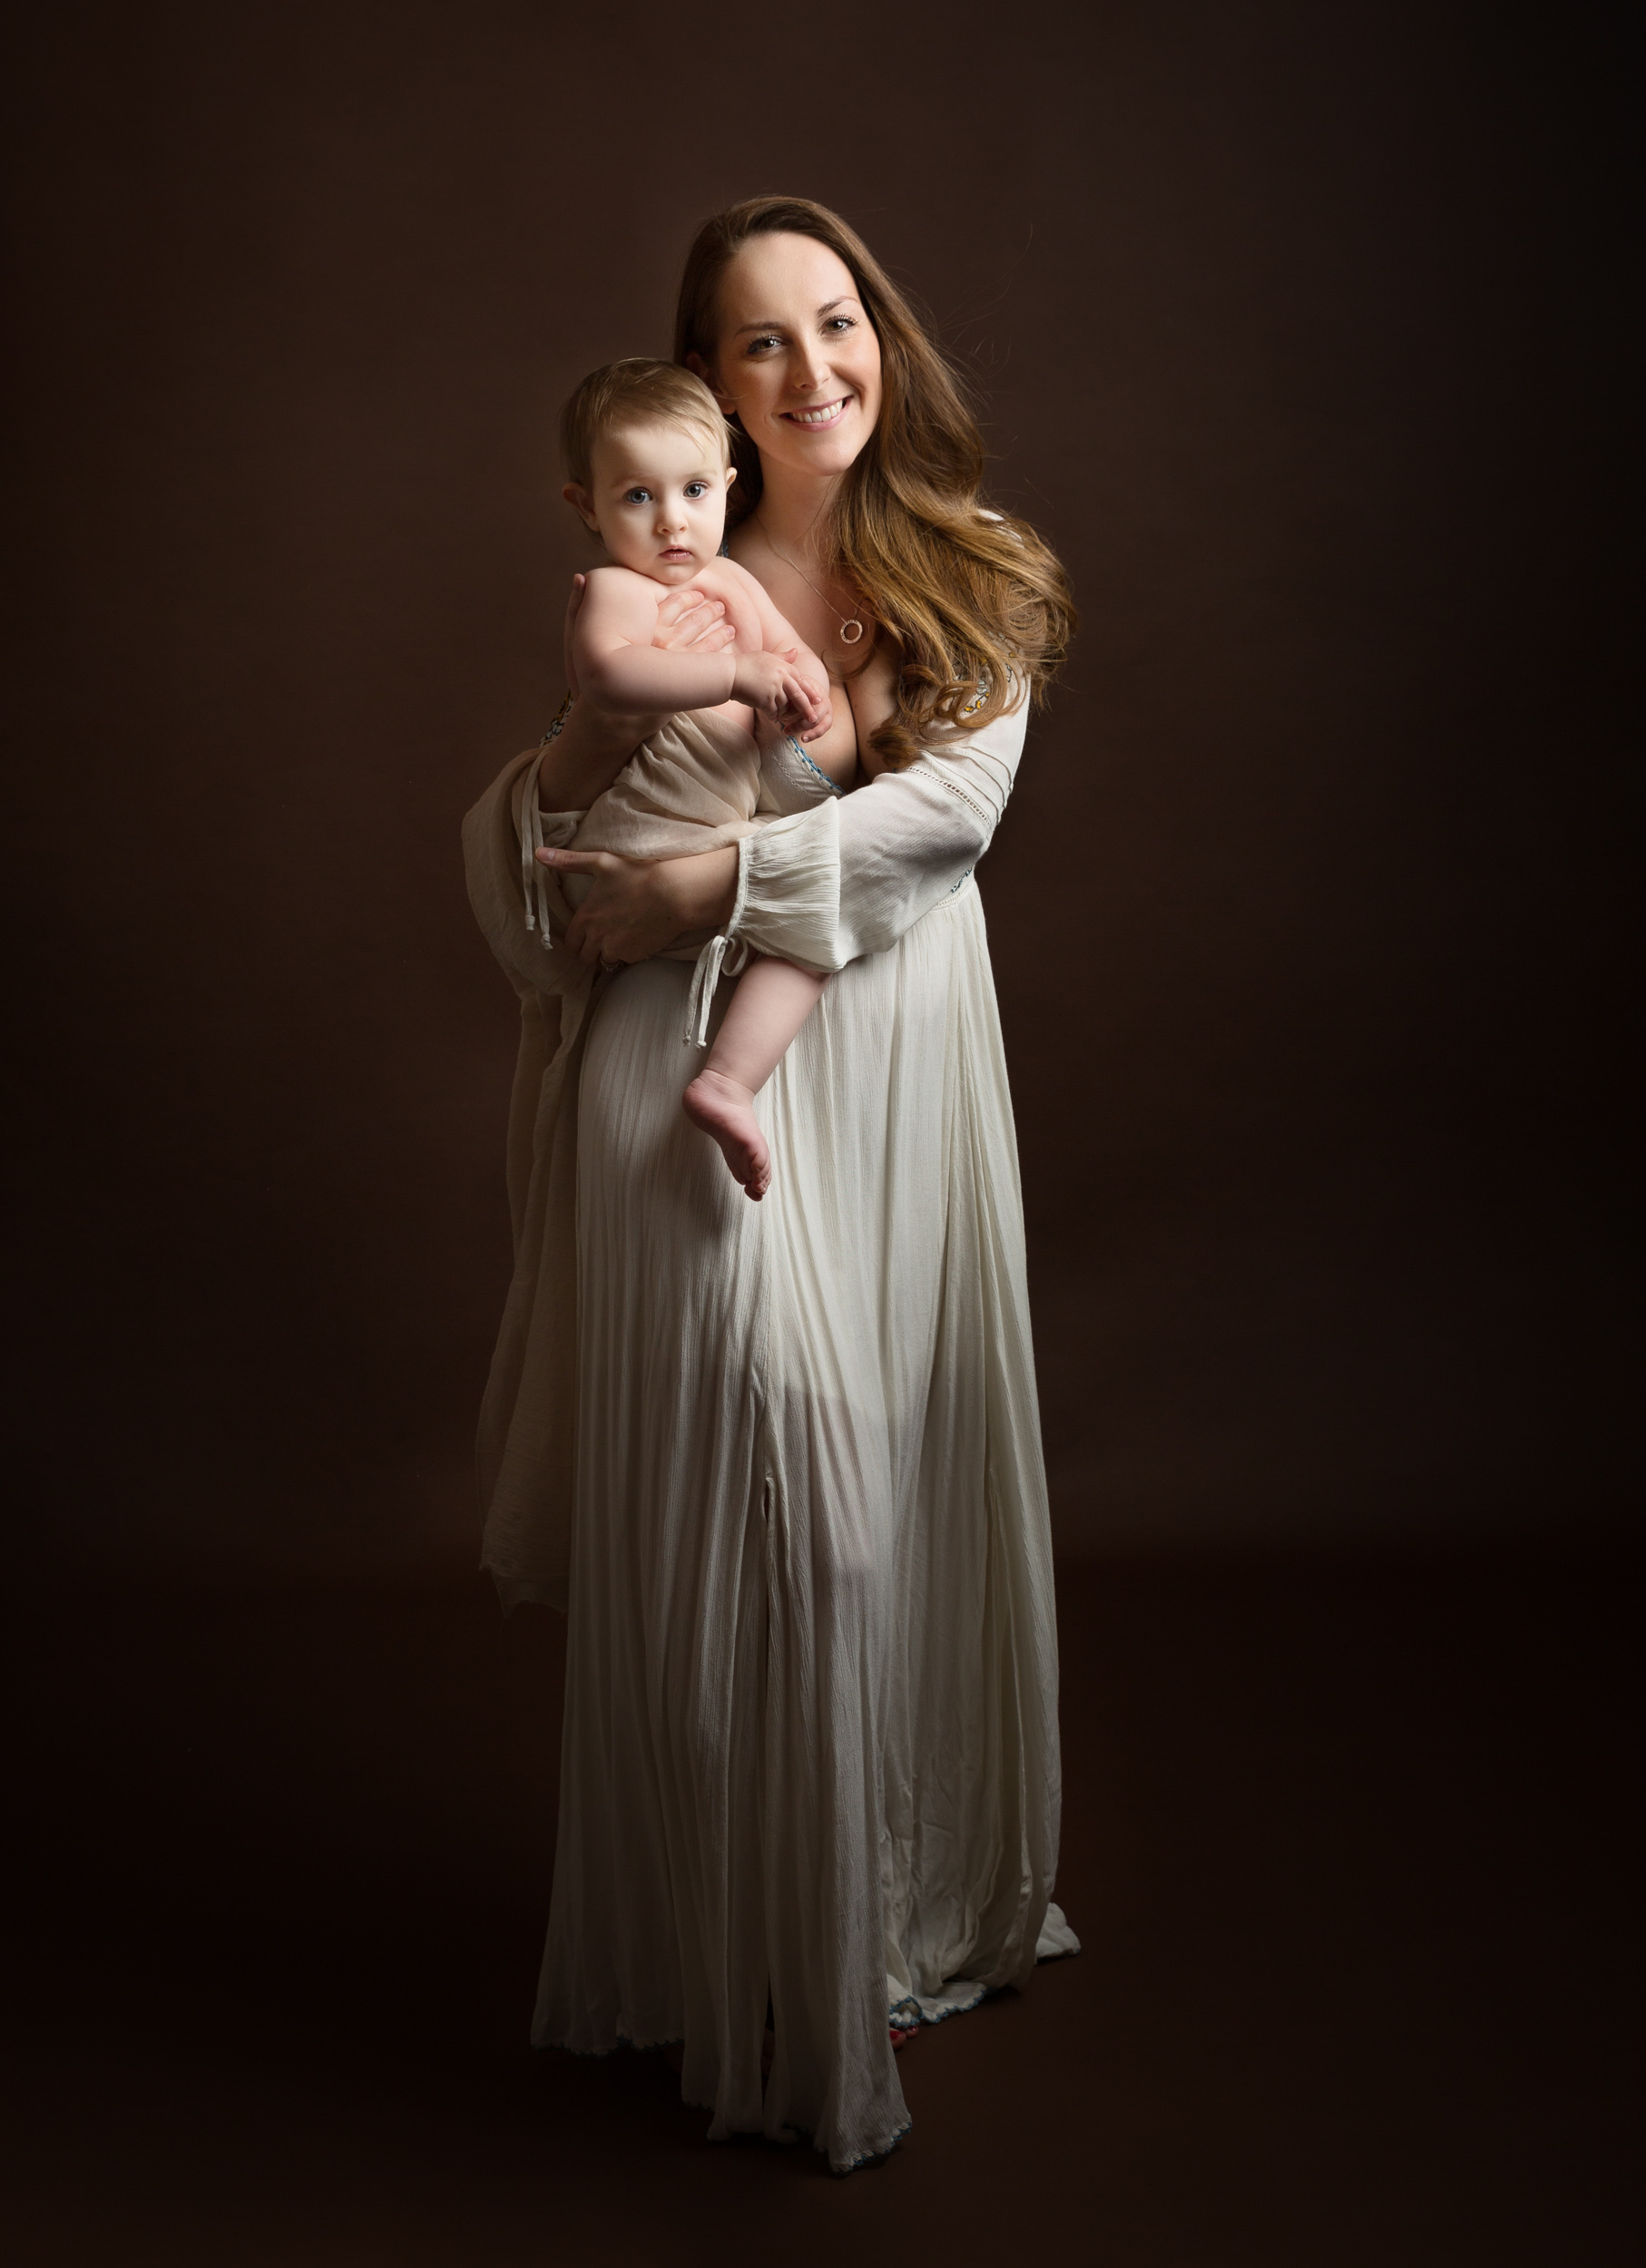 Mummy and baby together in a dramatic portrait in Cheshire